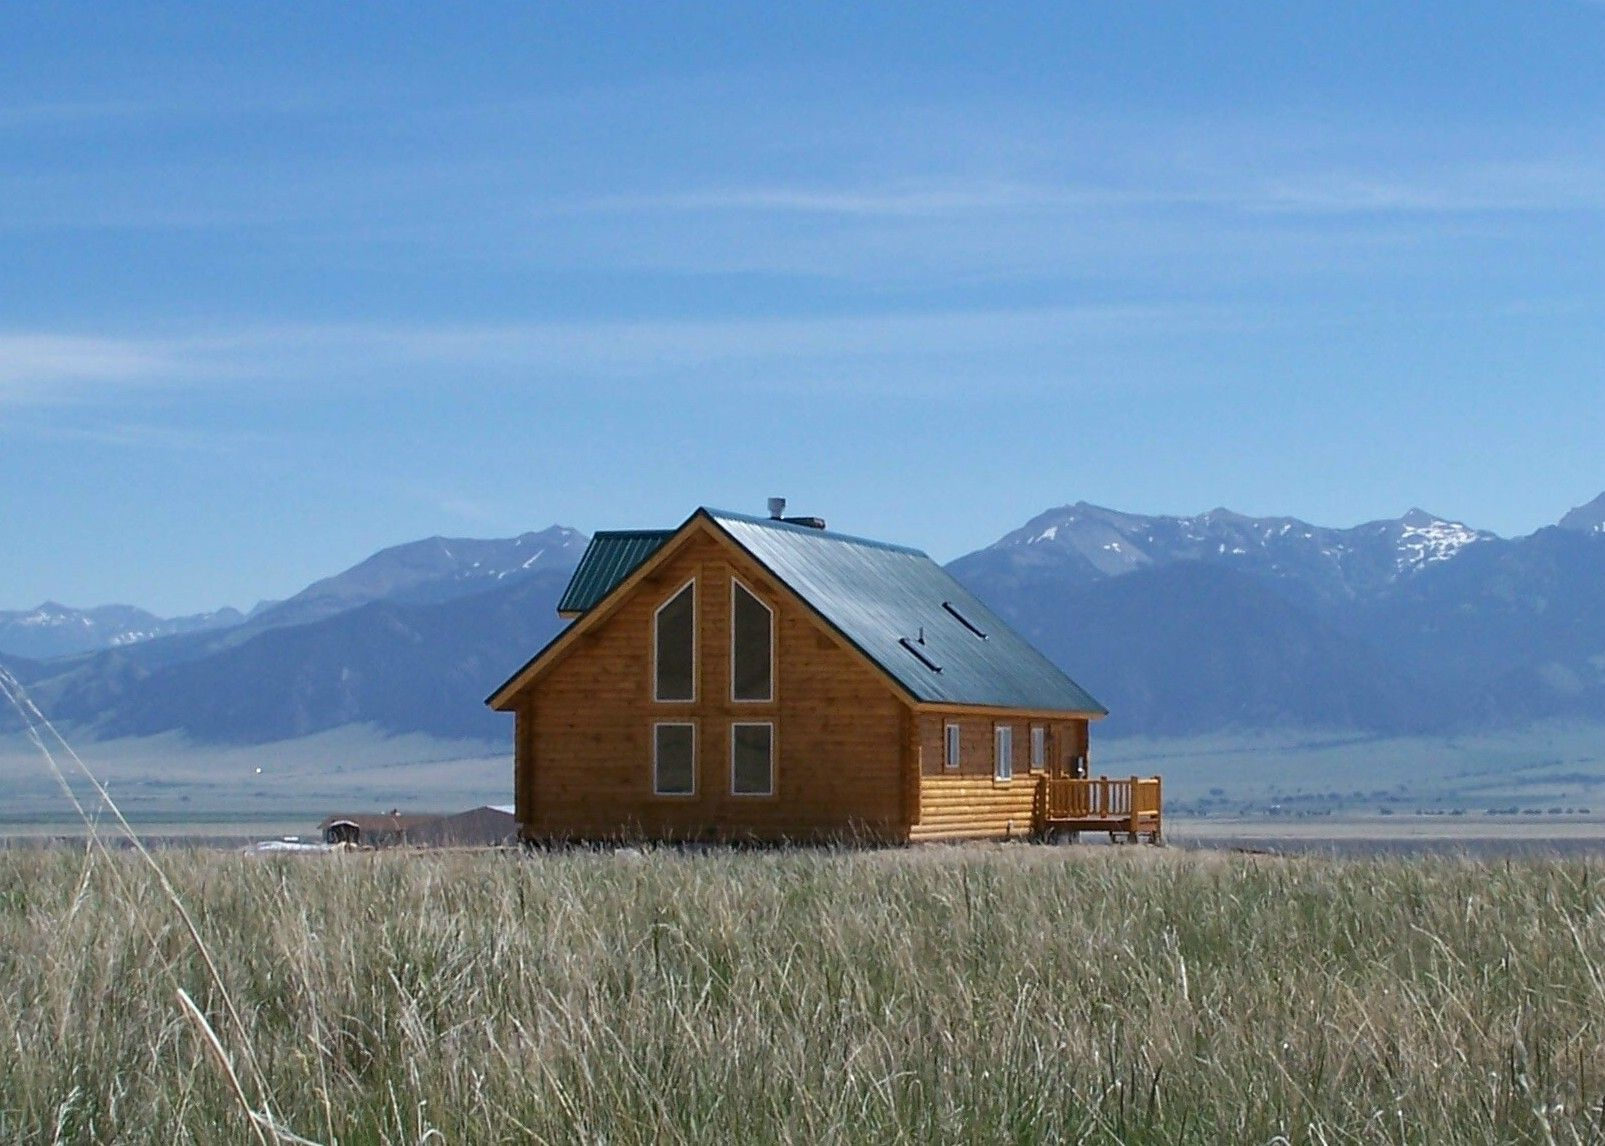 Montana Cabin In Middle Of Houses